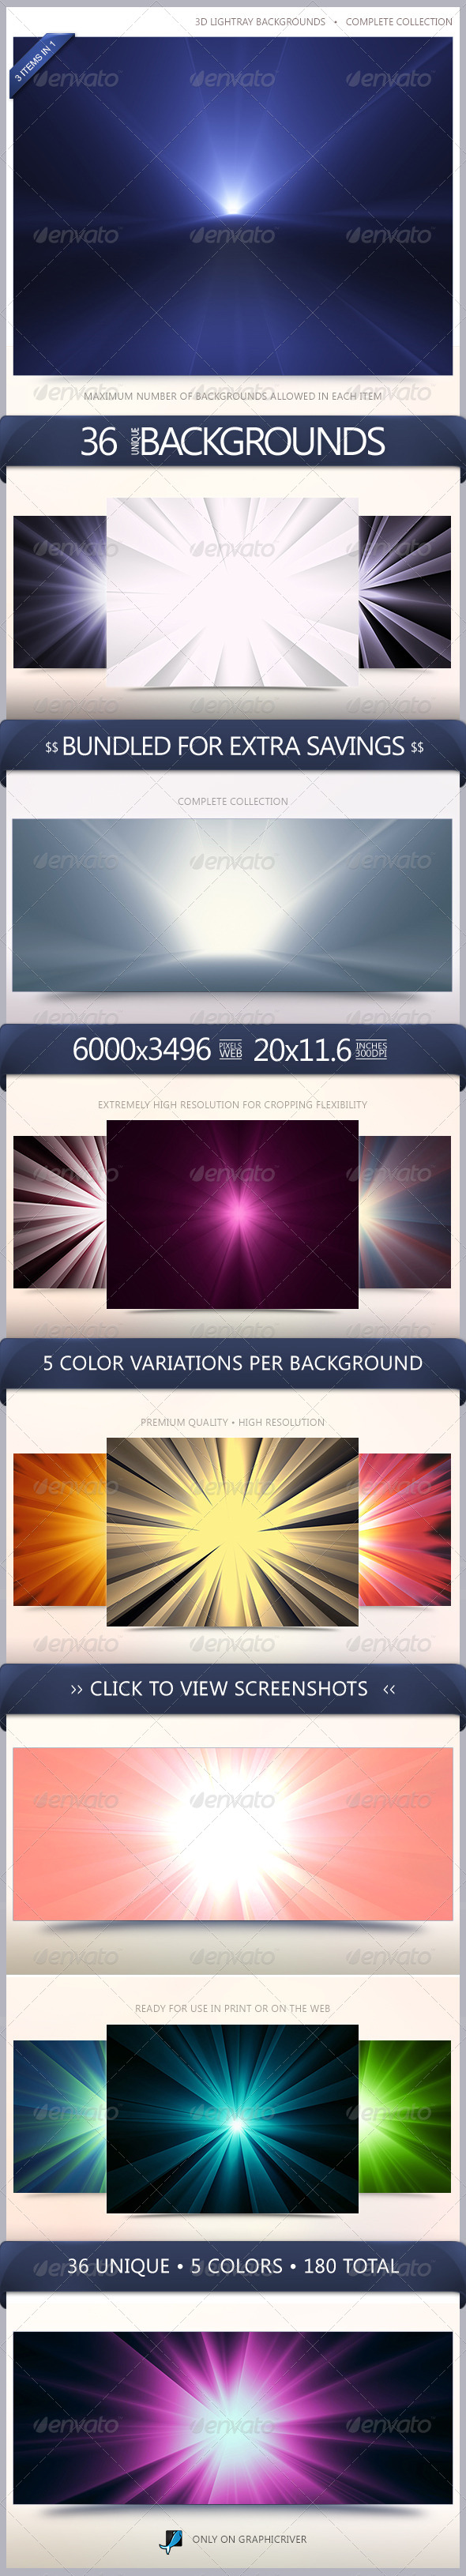 GraphicRiver 3D LightRay Backgrounds Bundle 6522566